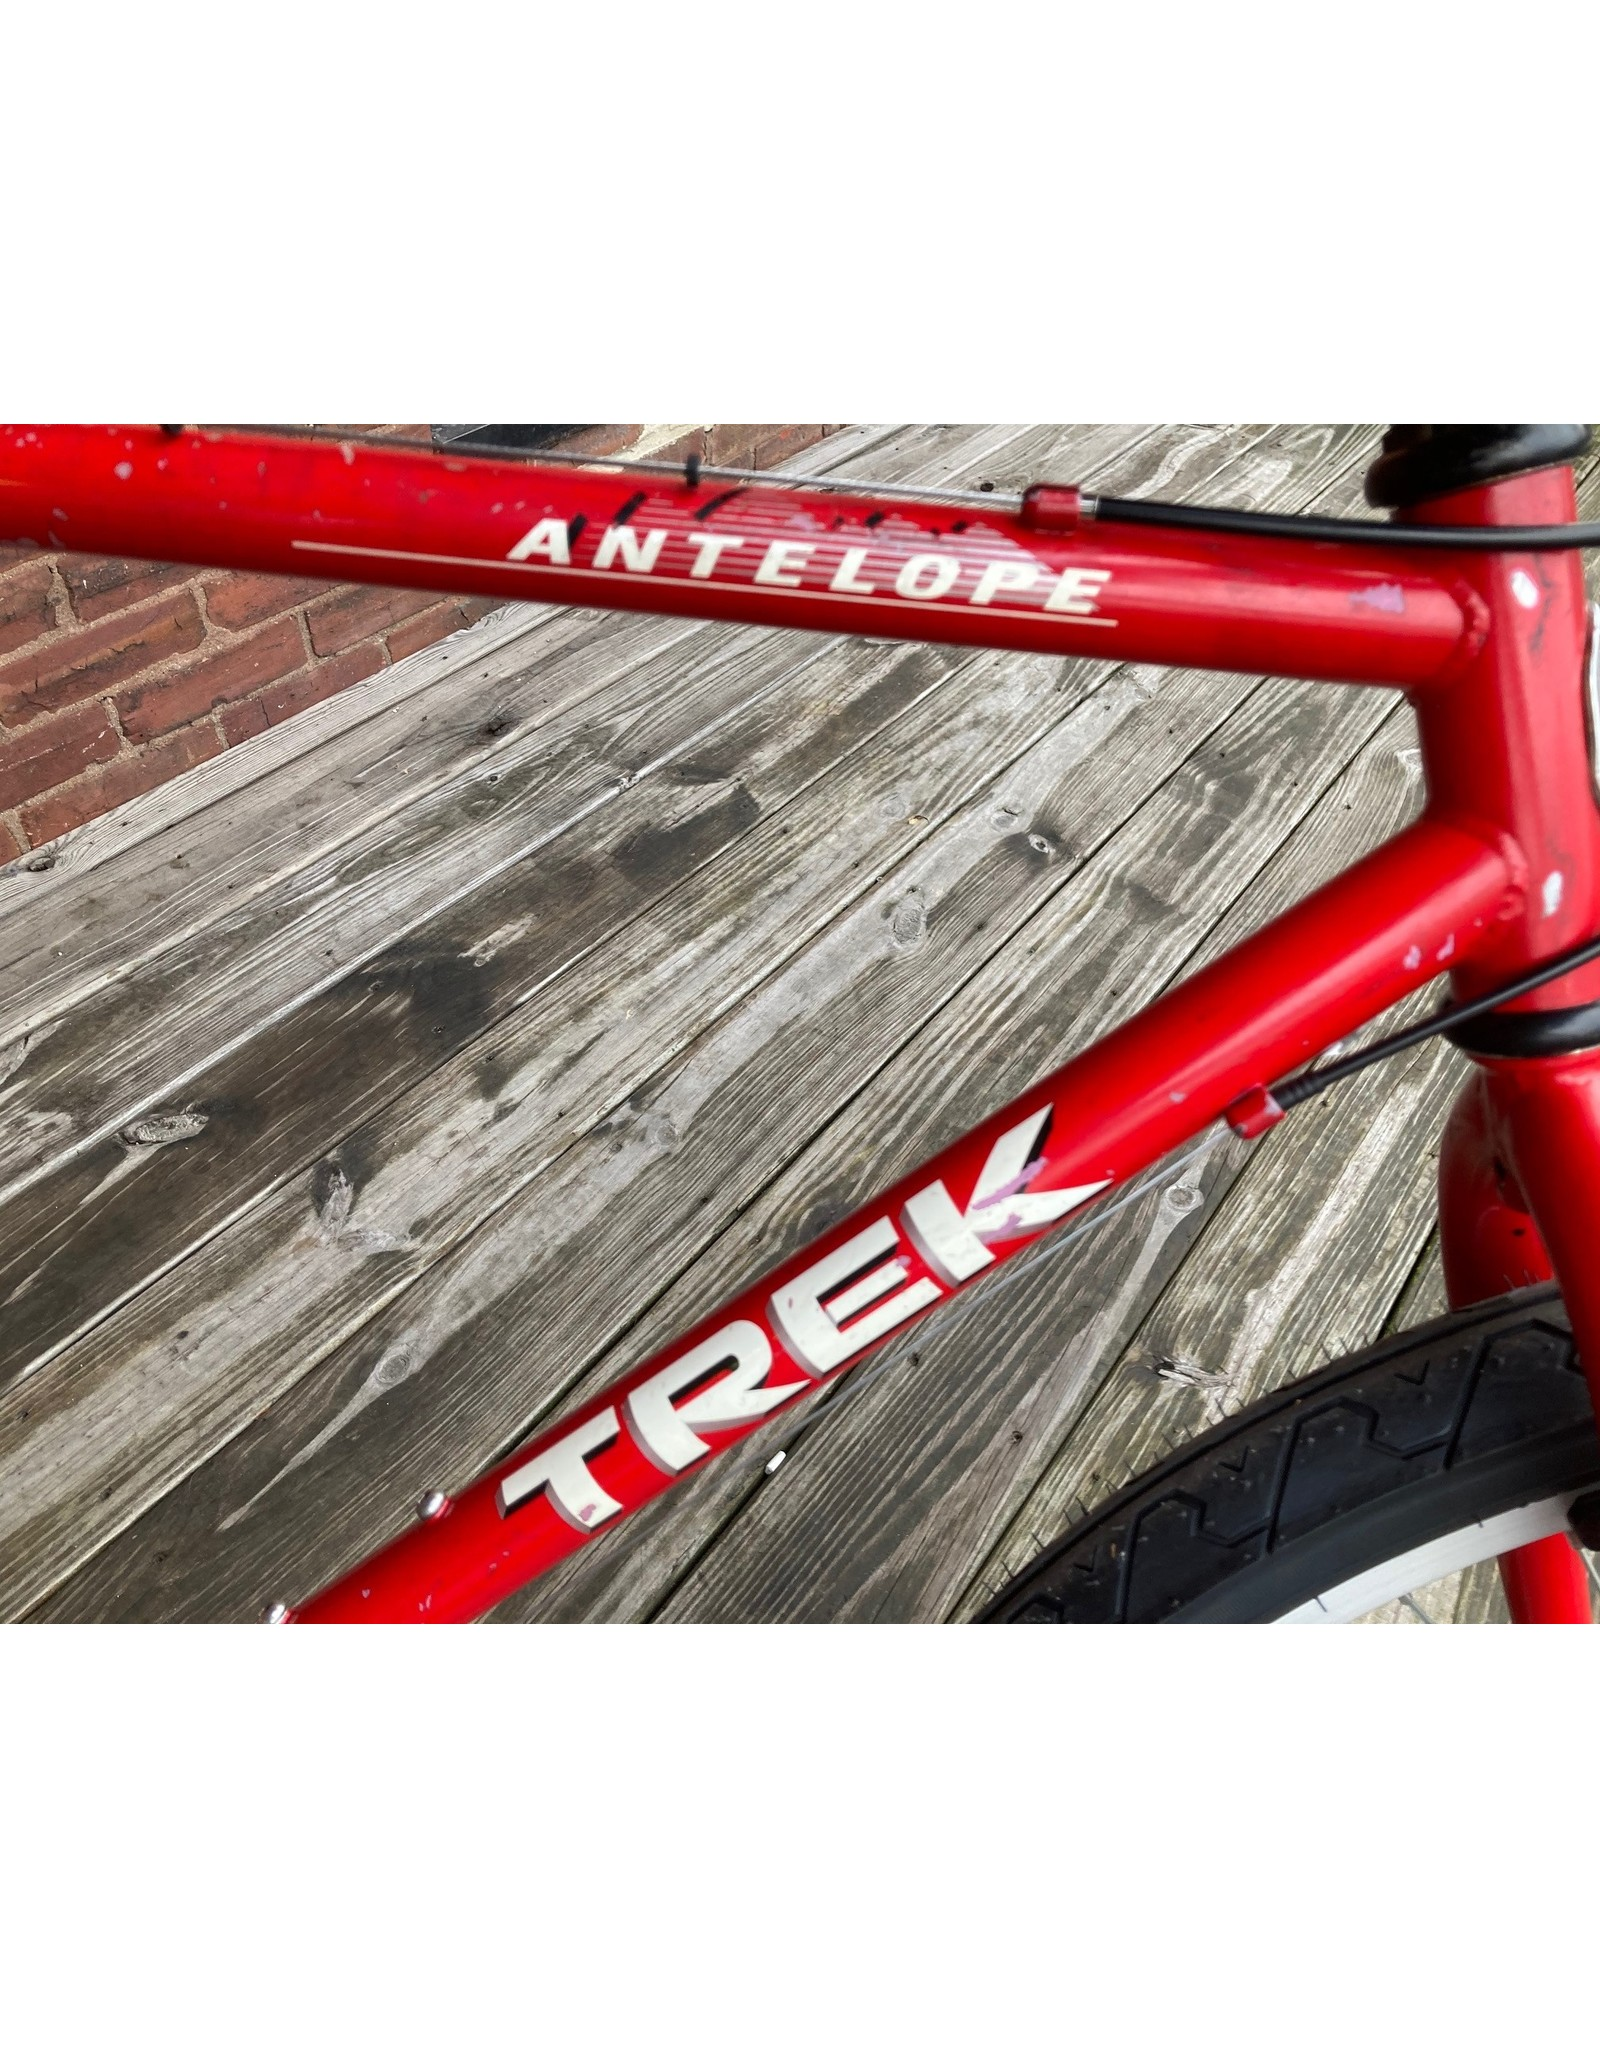 used bike 9749 TREK 800 RED atb 50cm